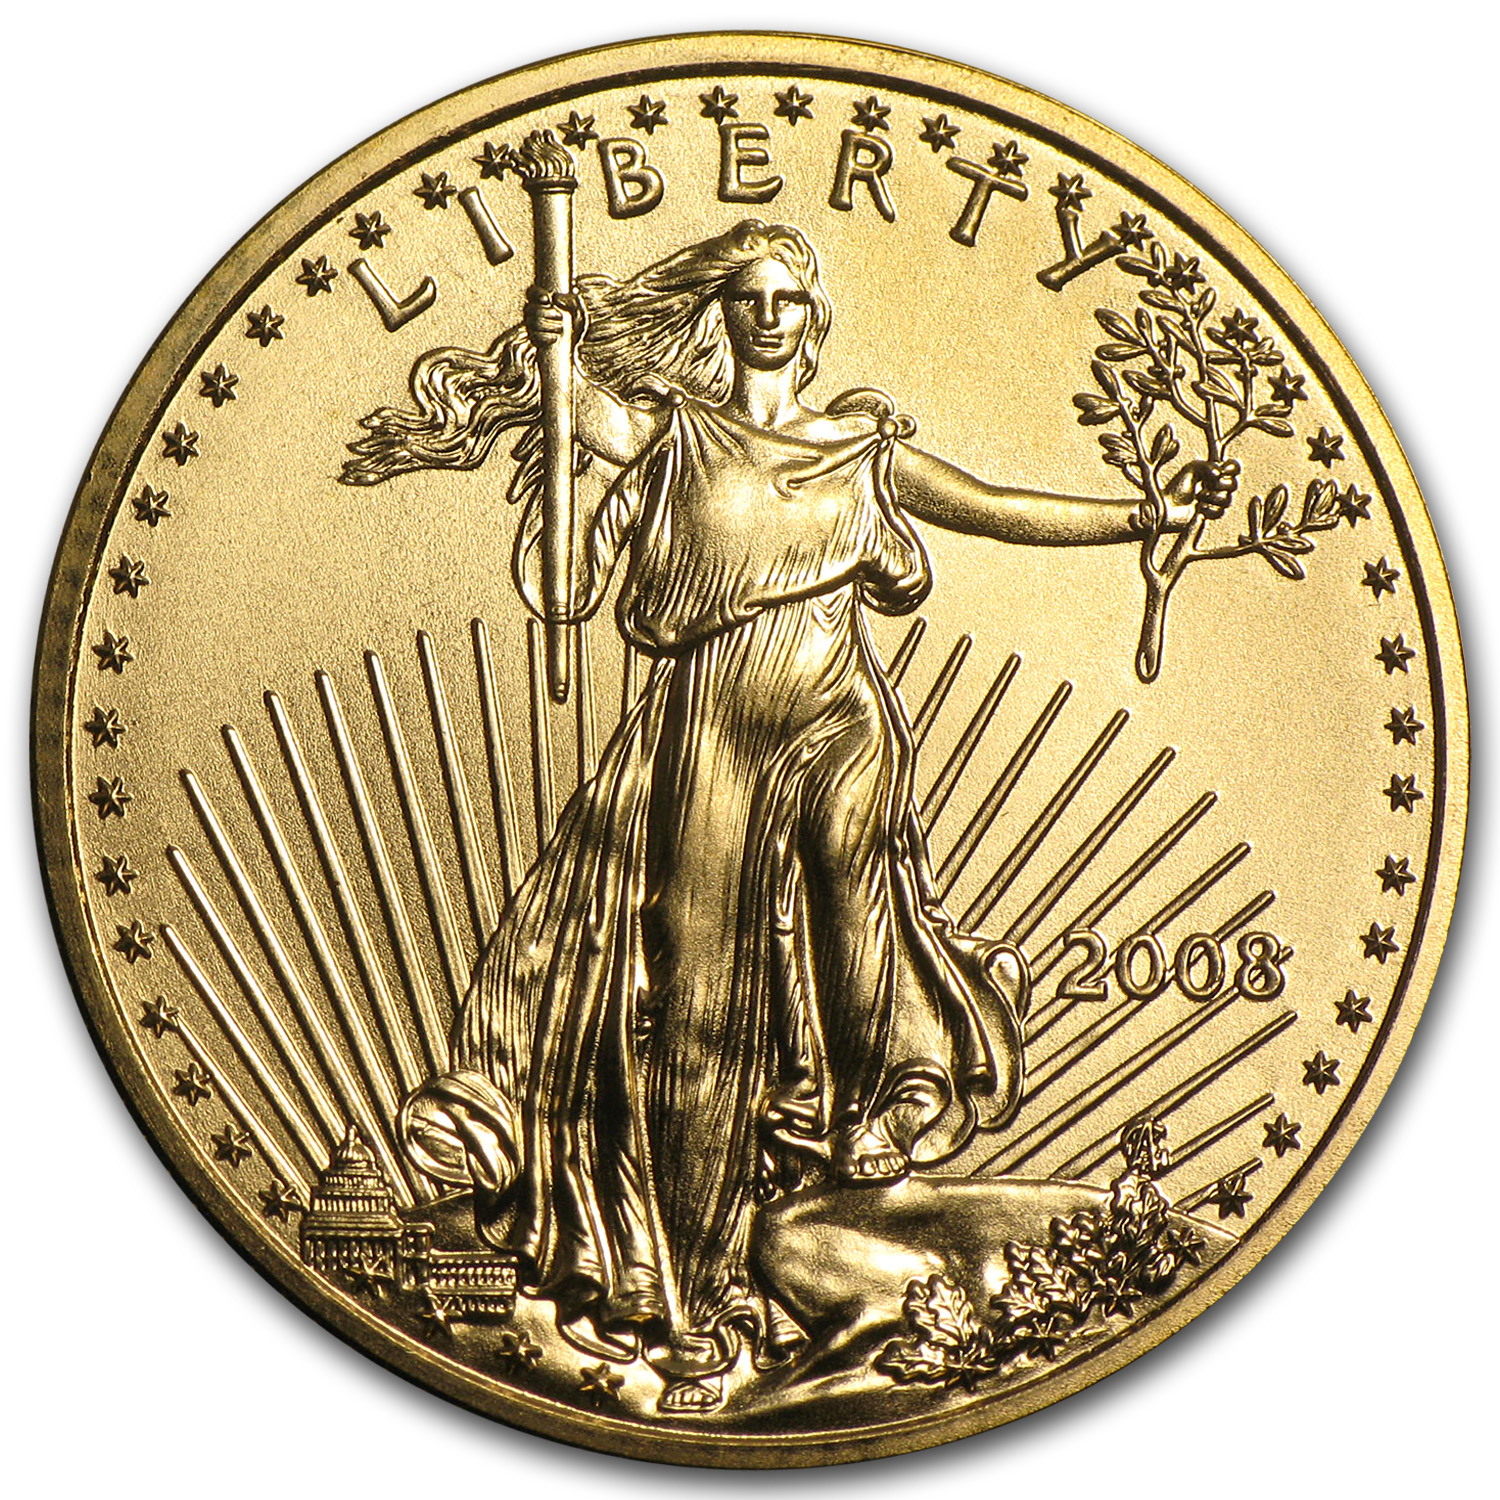 2008 1/4 oz Gold American Eagle (BU)